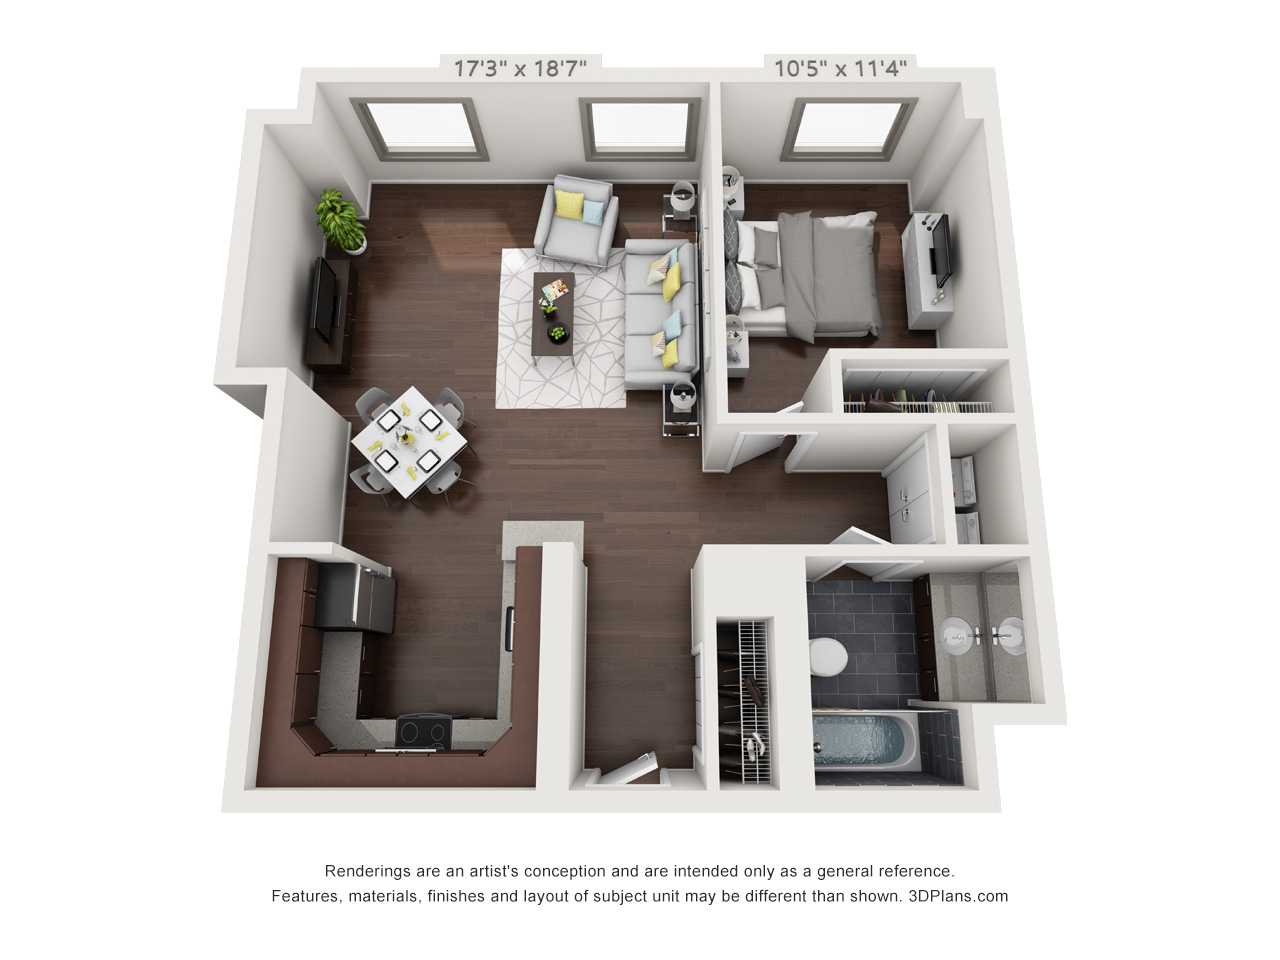 tower place apartments in philadelphia - 1 bedroom